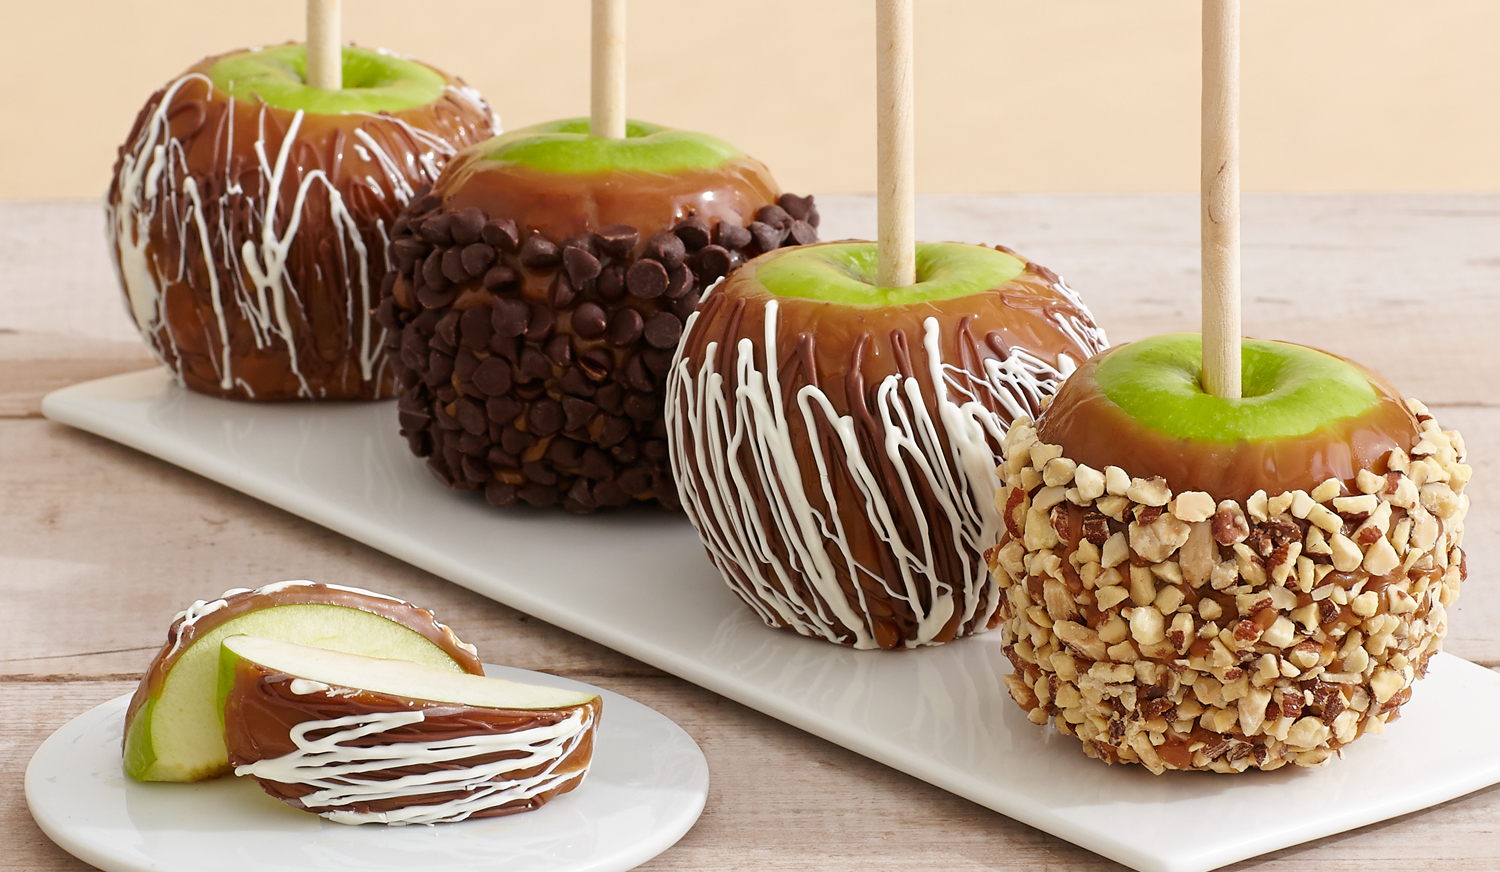 caramel-apples-hero-blog.jpg